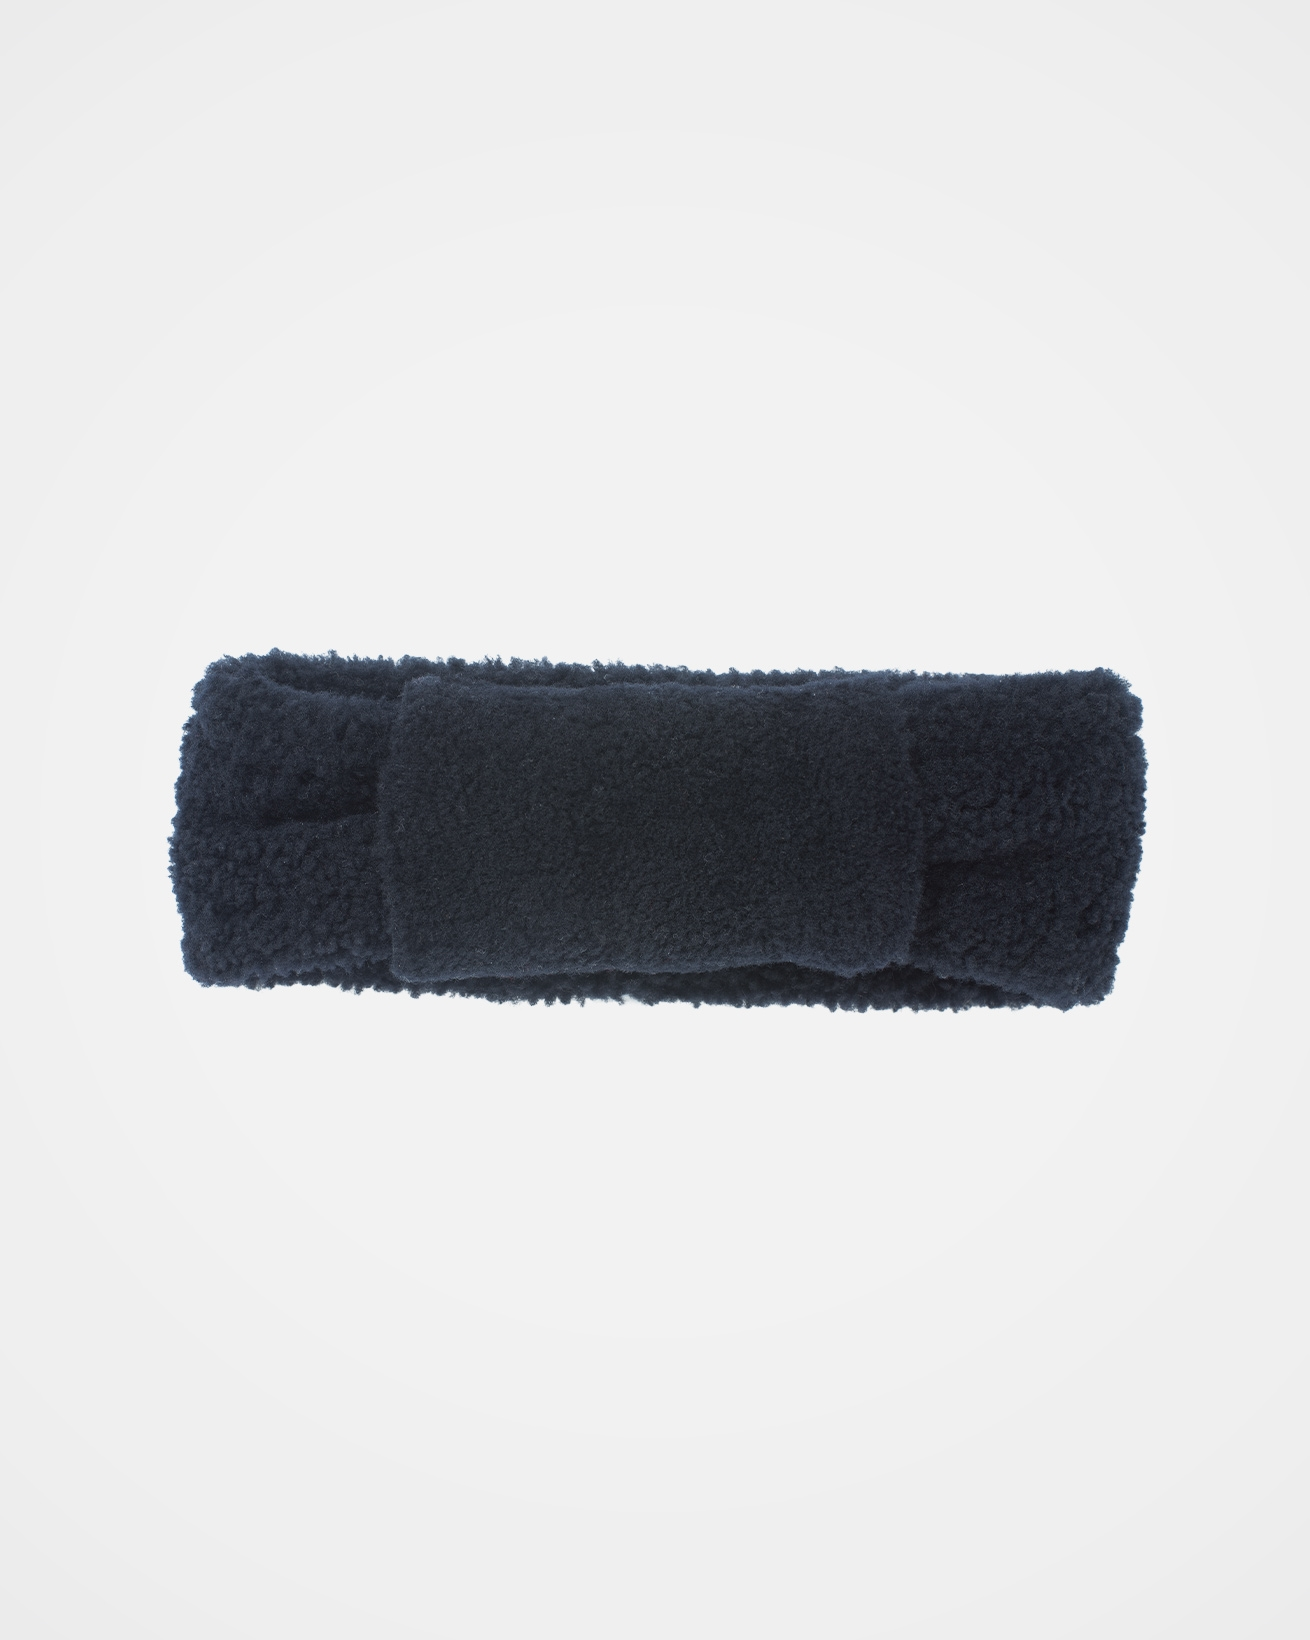 7635_sheepskin-merino-headband_ink_flat.jpg